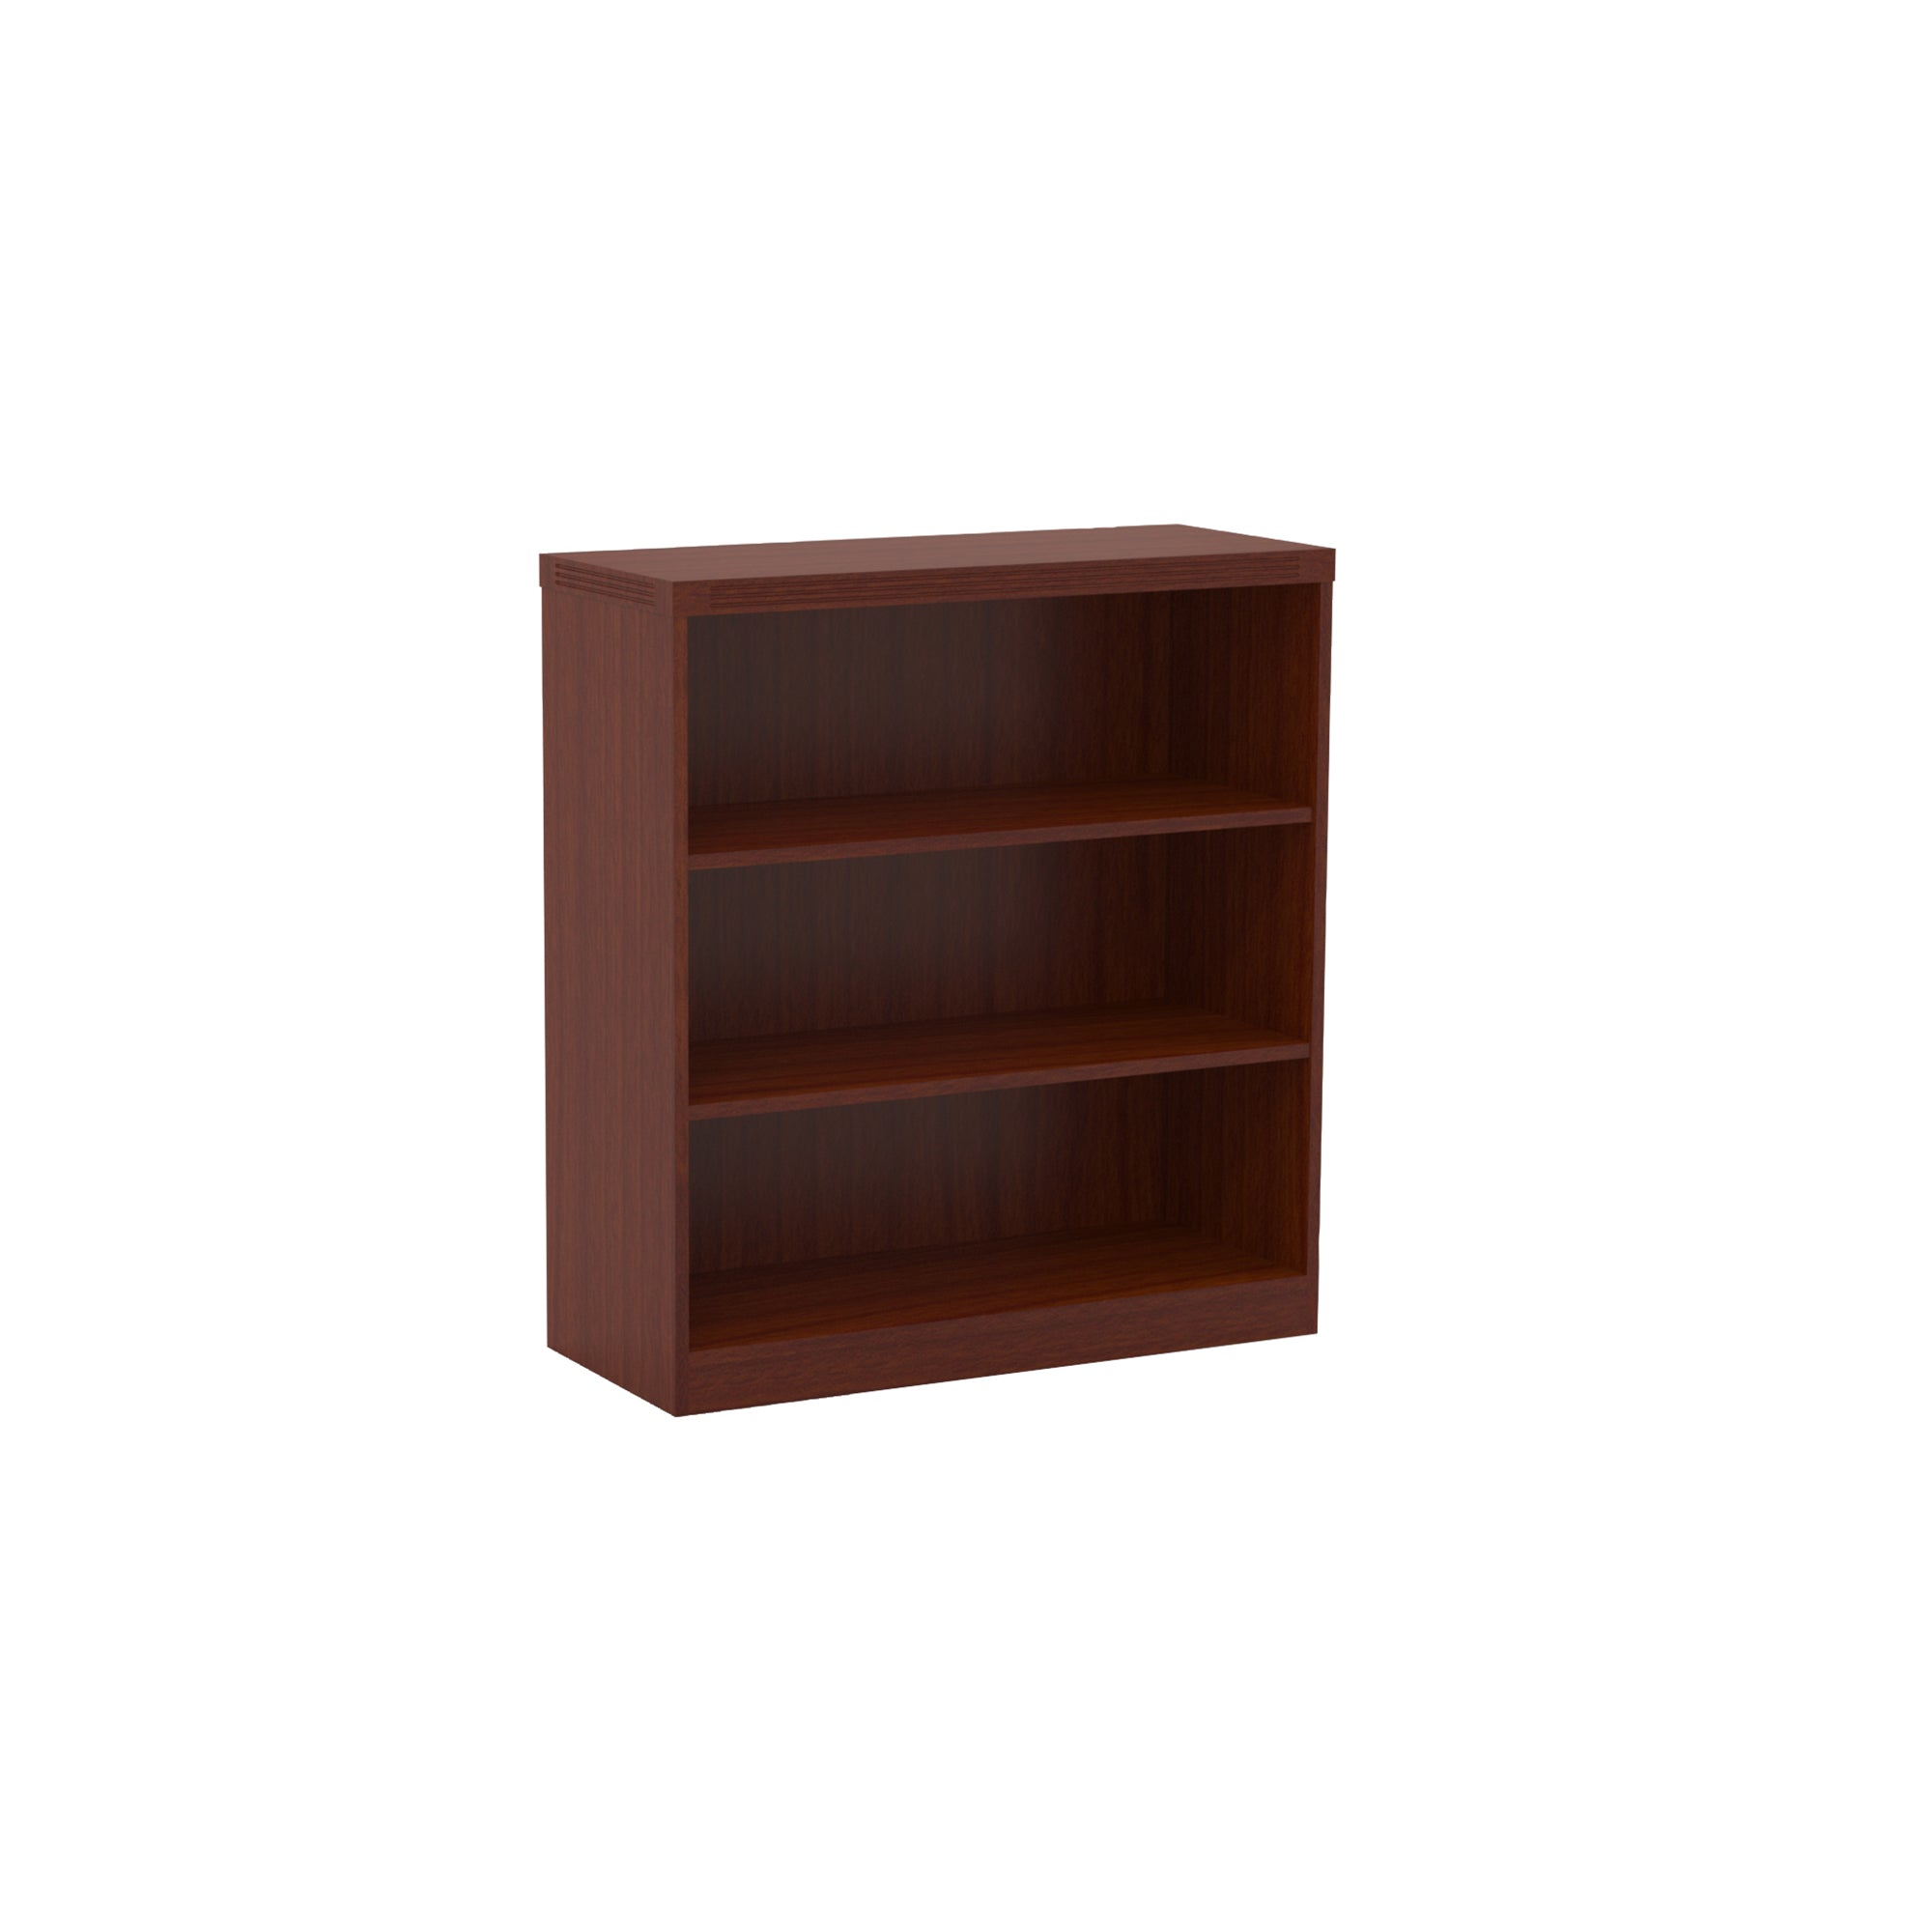 39 Bookcase With Cable Management In Cherry